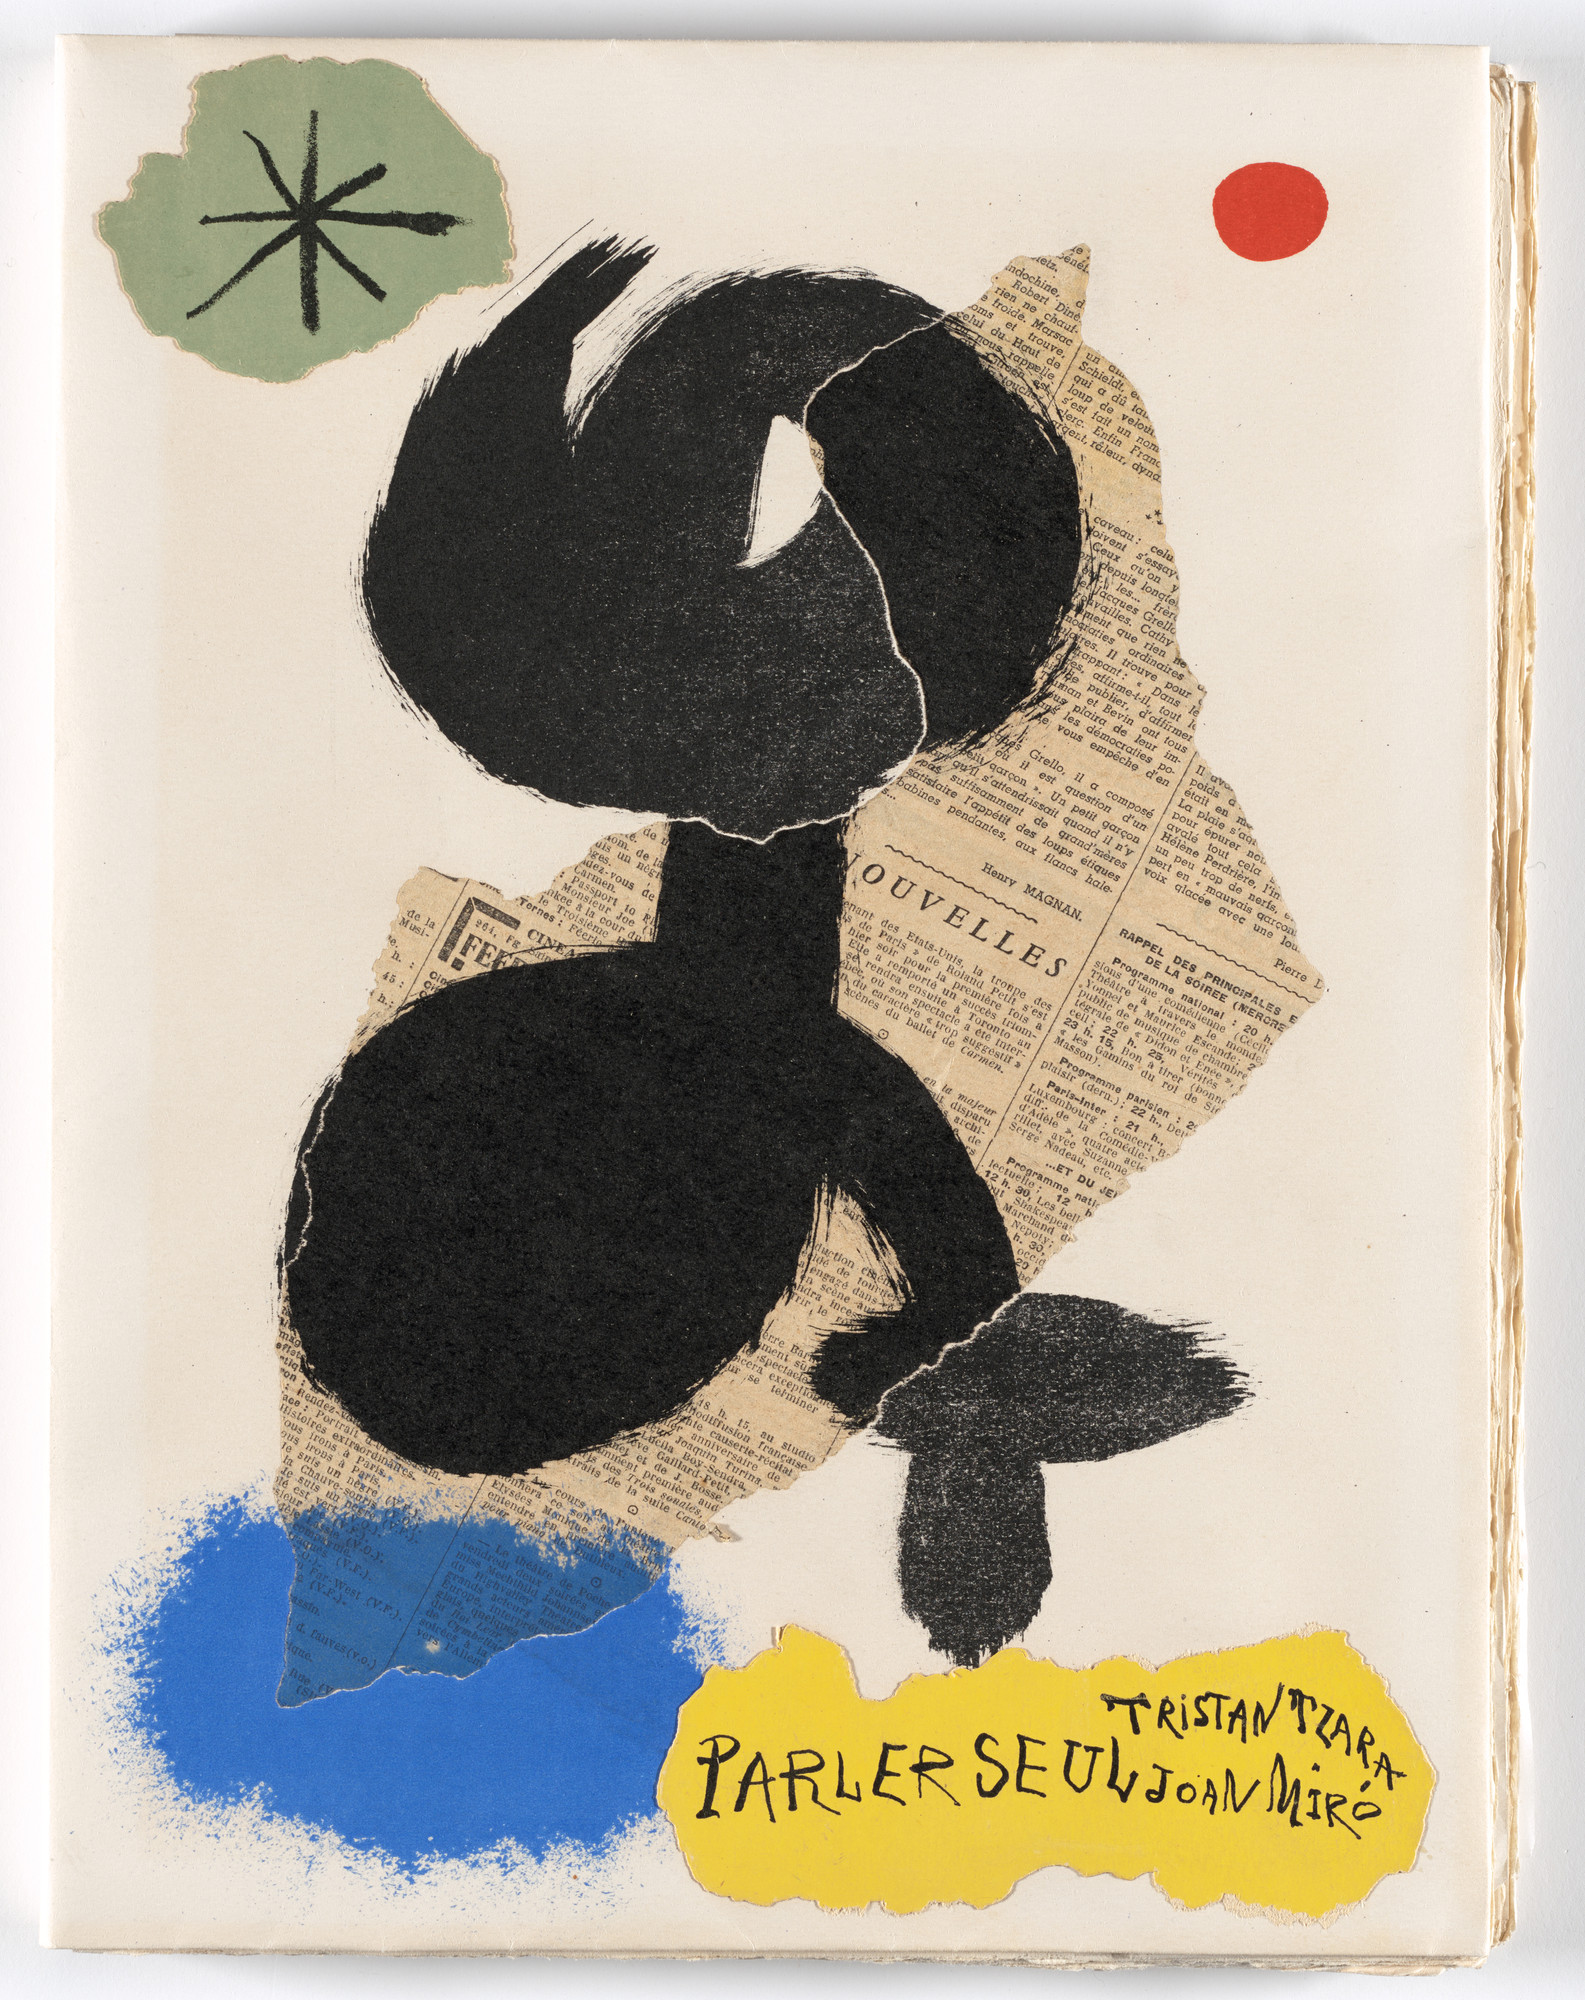 Joan Miró. Wrapper front from Parler seul (Speaking Alone). 1948–50, published 1950